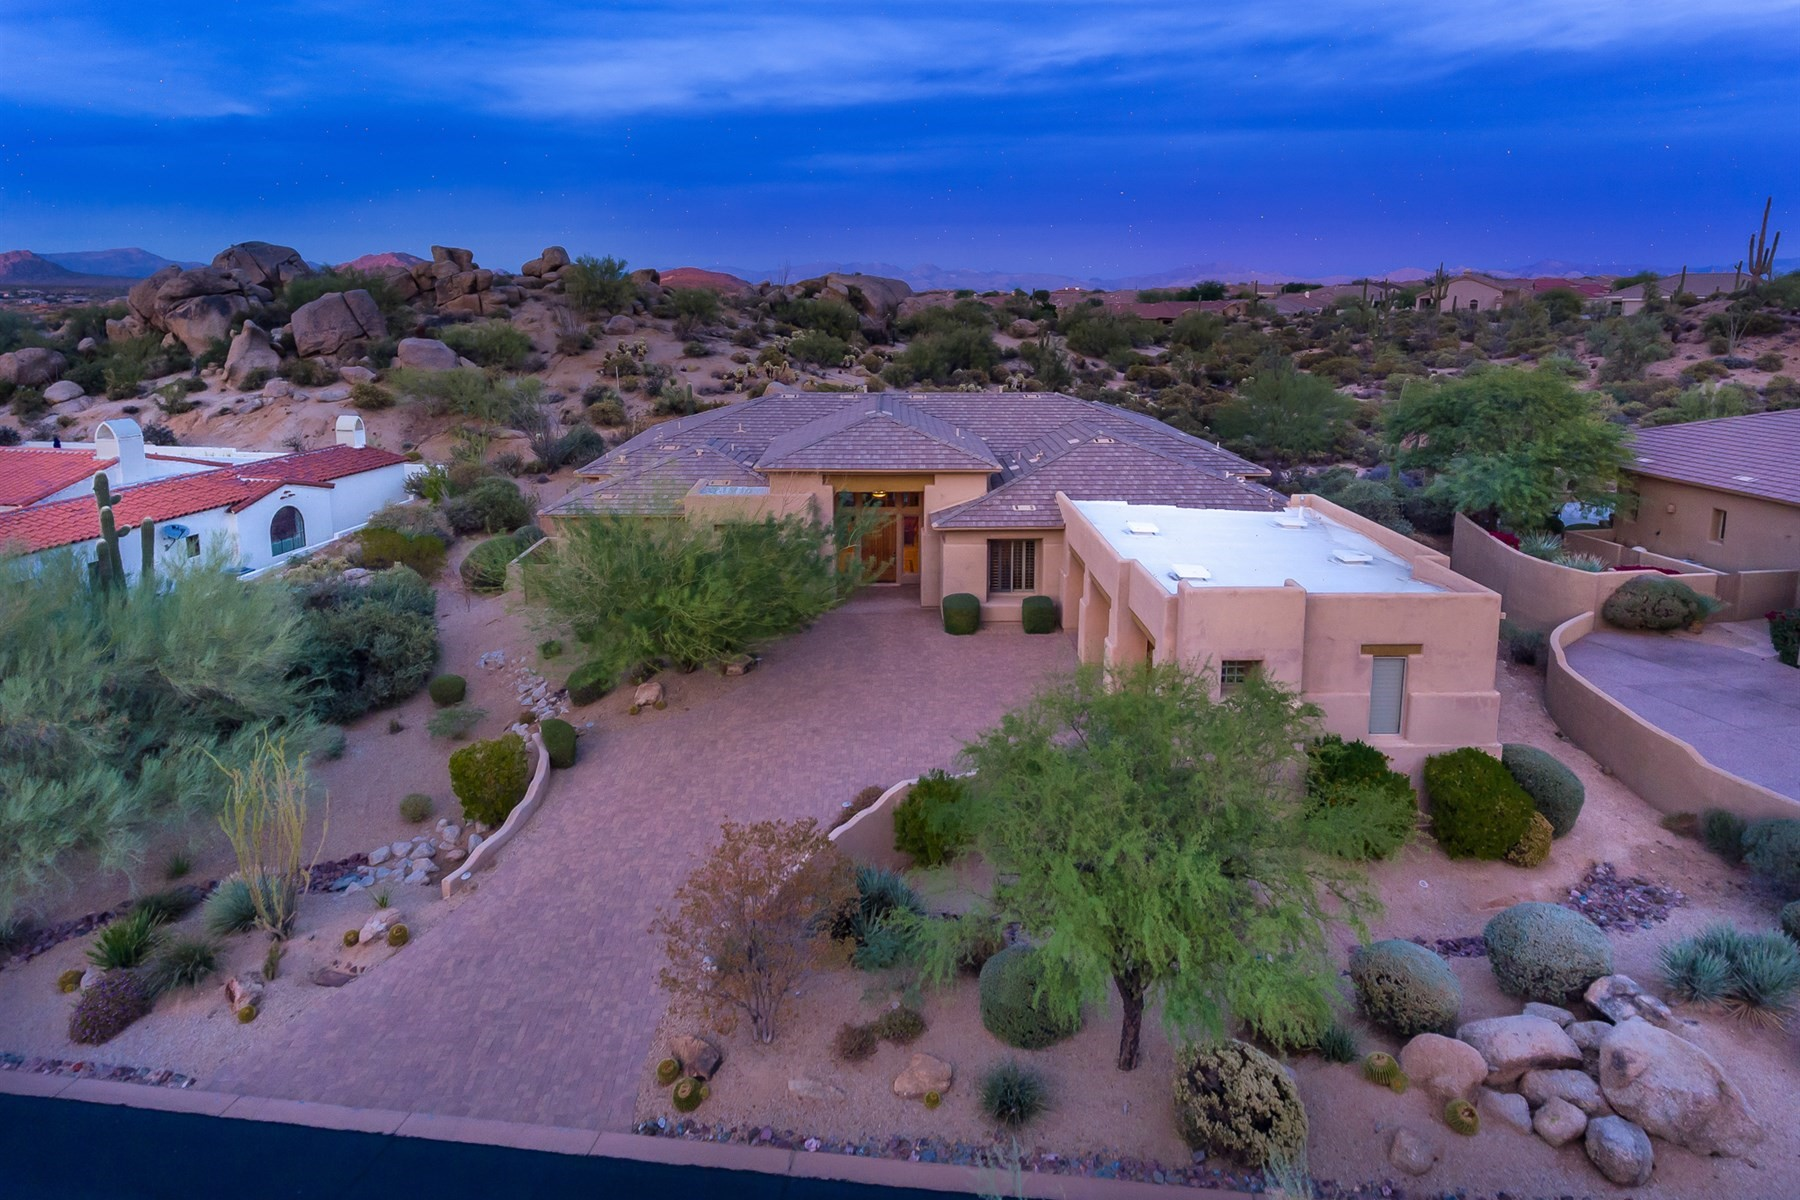 一戸建て のために 売買 アット Pristine Custom Home in guard-gated Troon Village 11422 E Desert Troon Ln, Scottsdale, アリゾナ, 85255 アメリカ合衆国